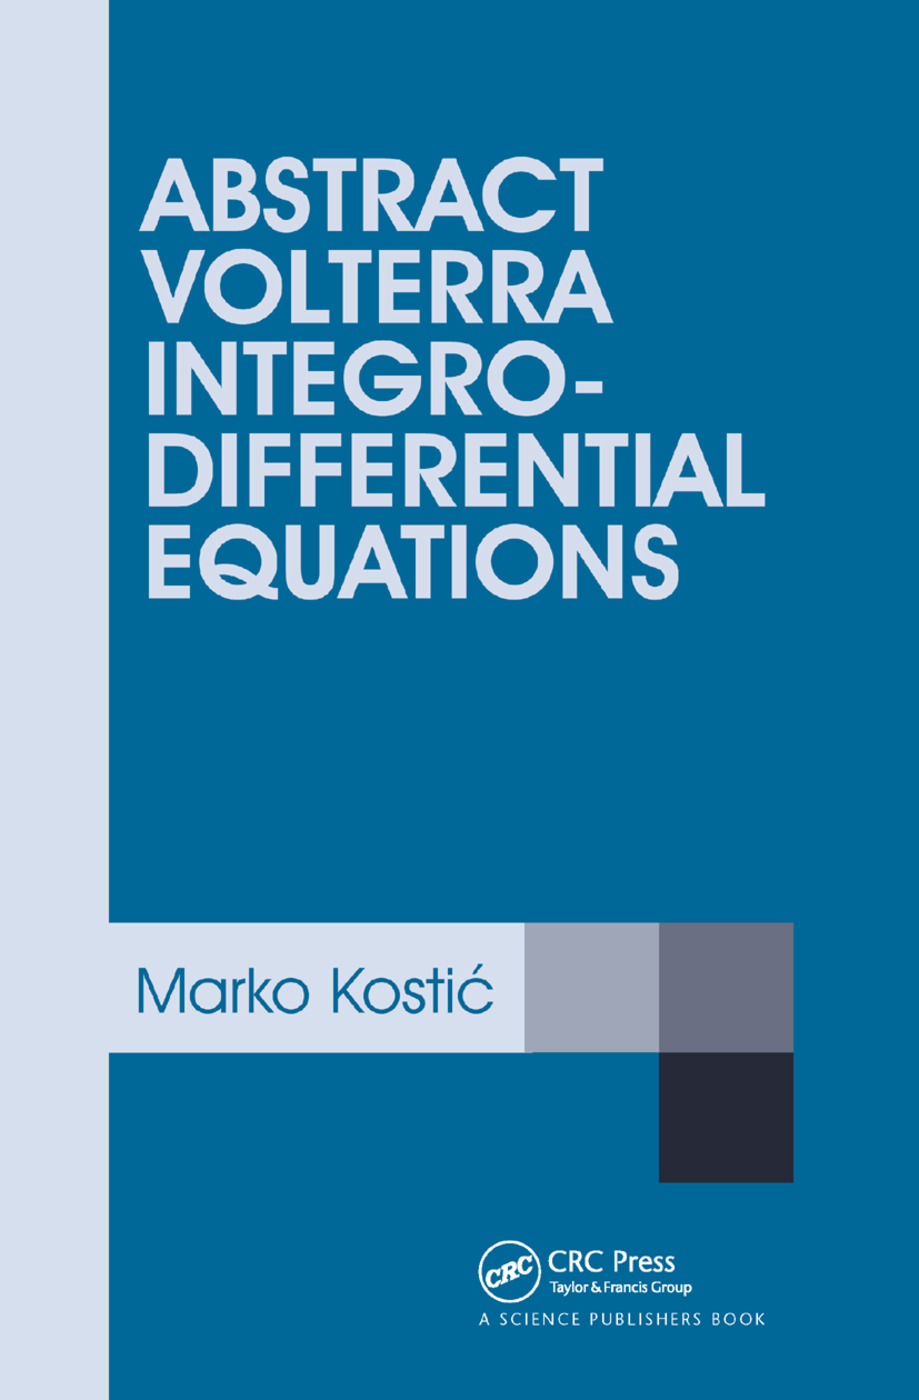 Abstract Volterra Integro-Differential Equations: 1st Edition (Paperback) book cover